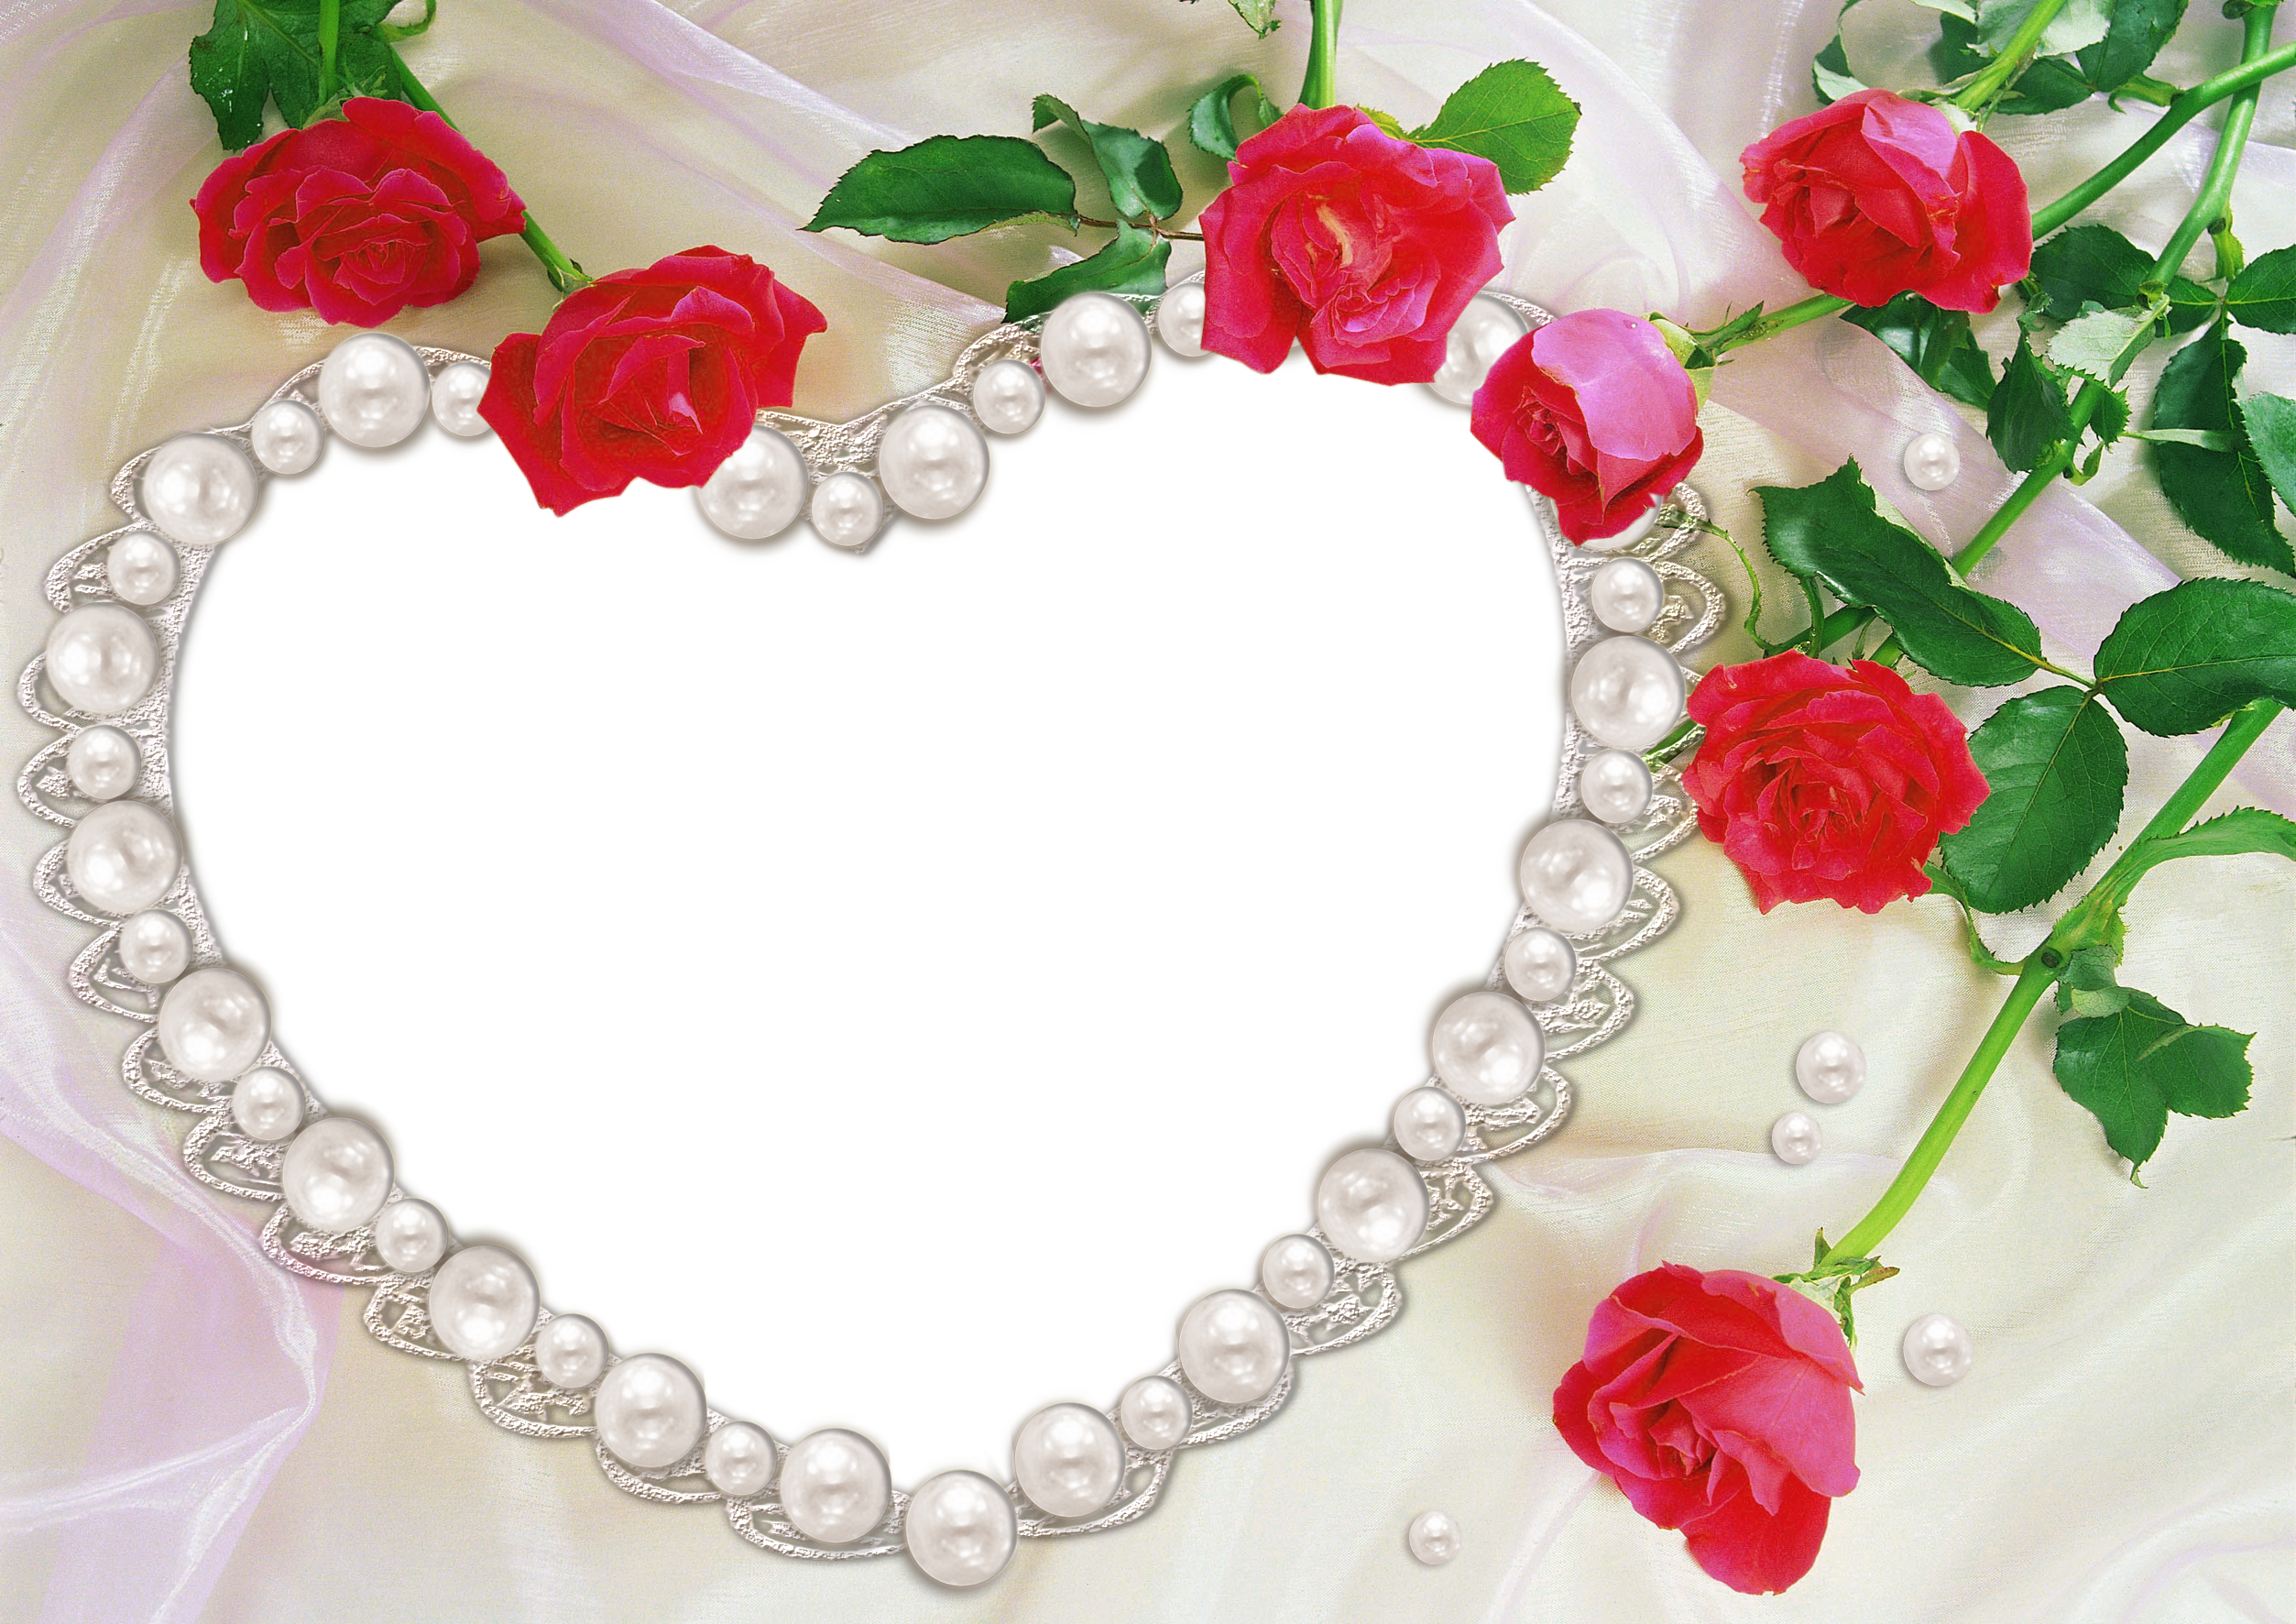 Clipart roses pearl. Heart and transparent frame